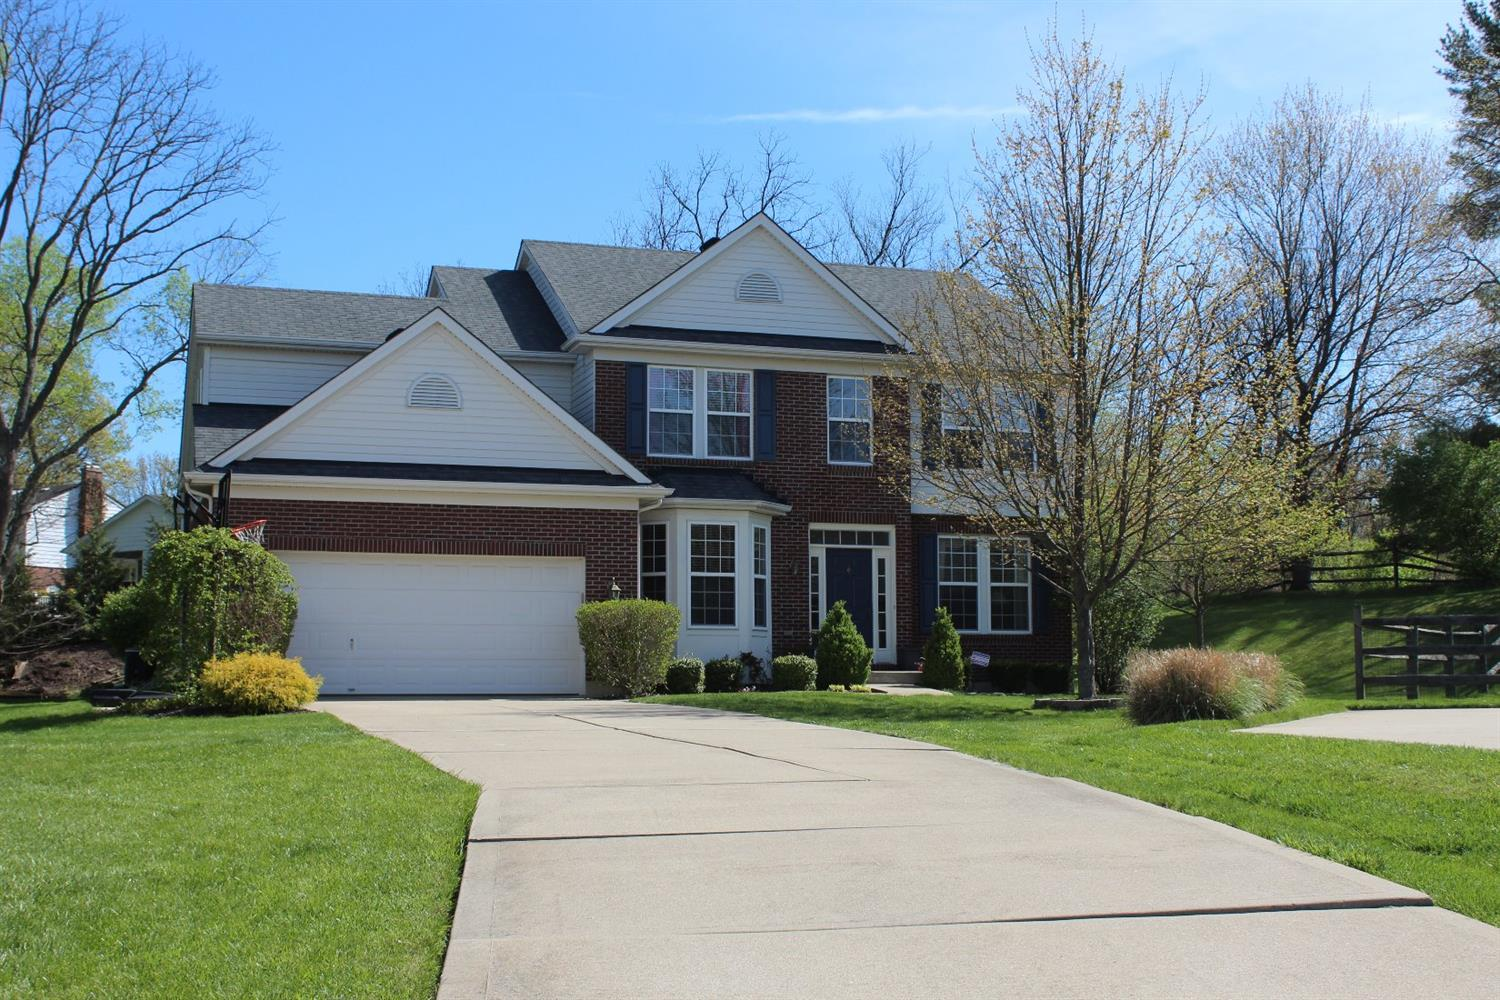 5997 Brierly Ridge Dr Monfort Hts., OH